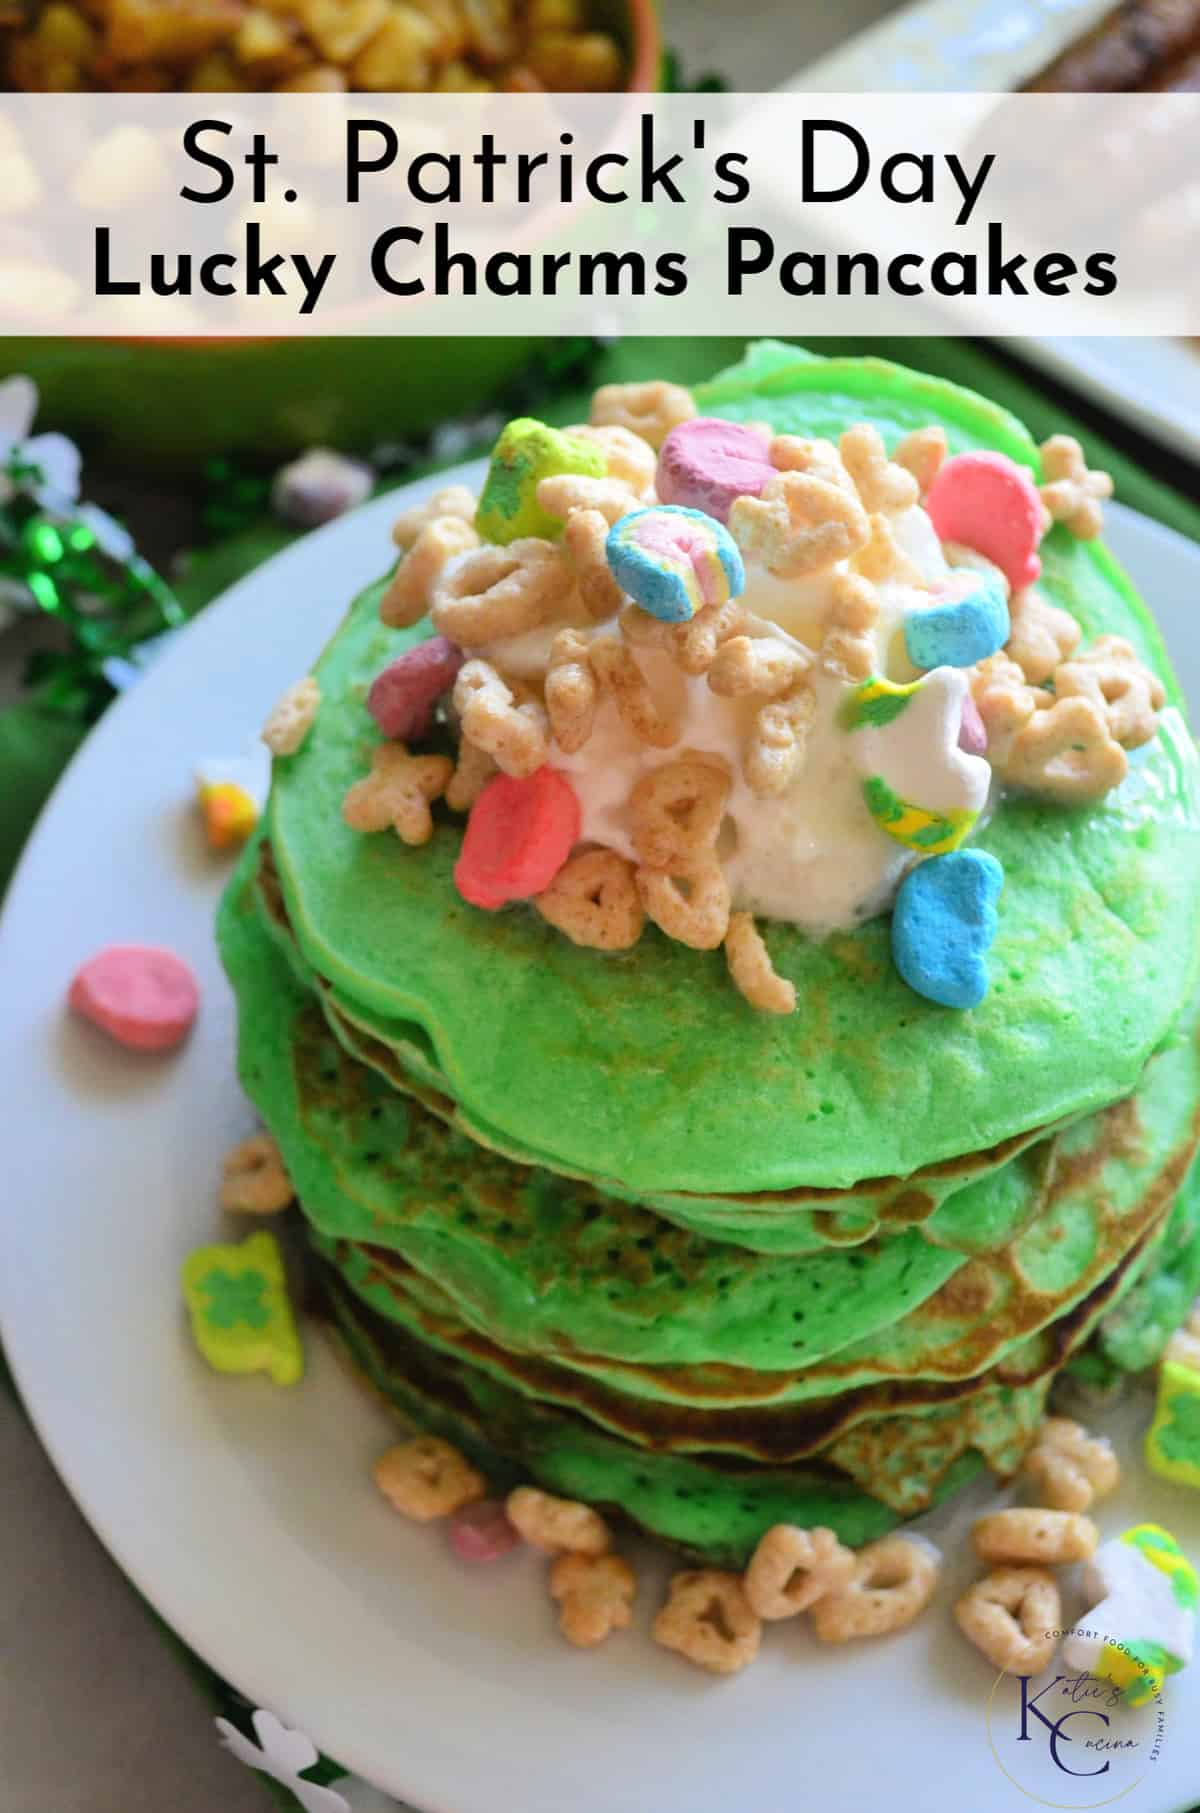 St. Patrick's Day Lucky Charms Pancakes with title